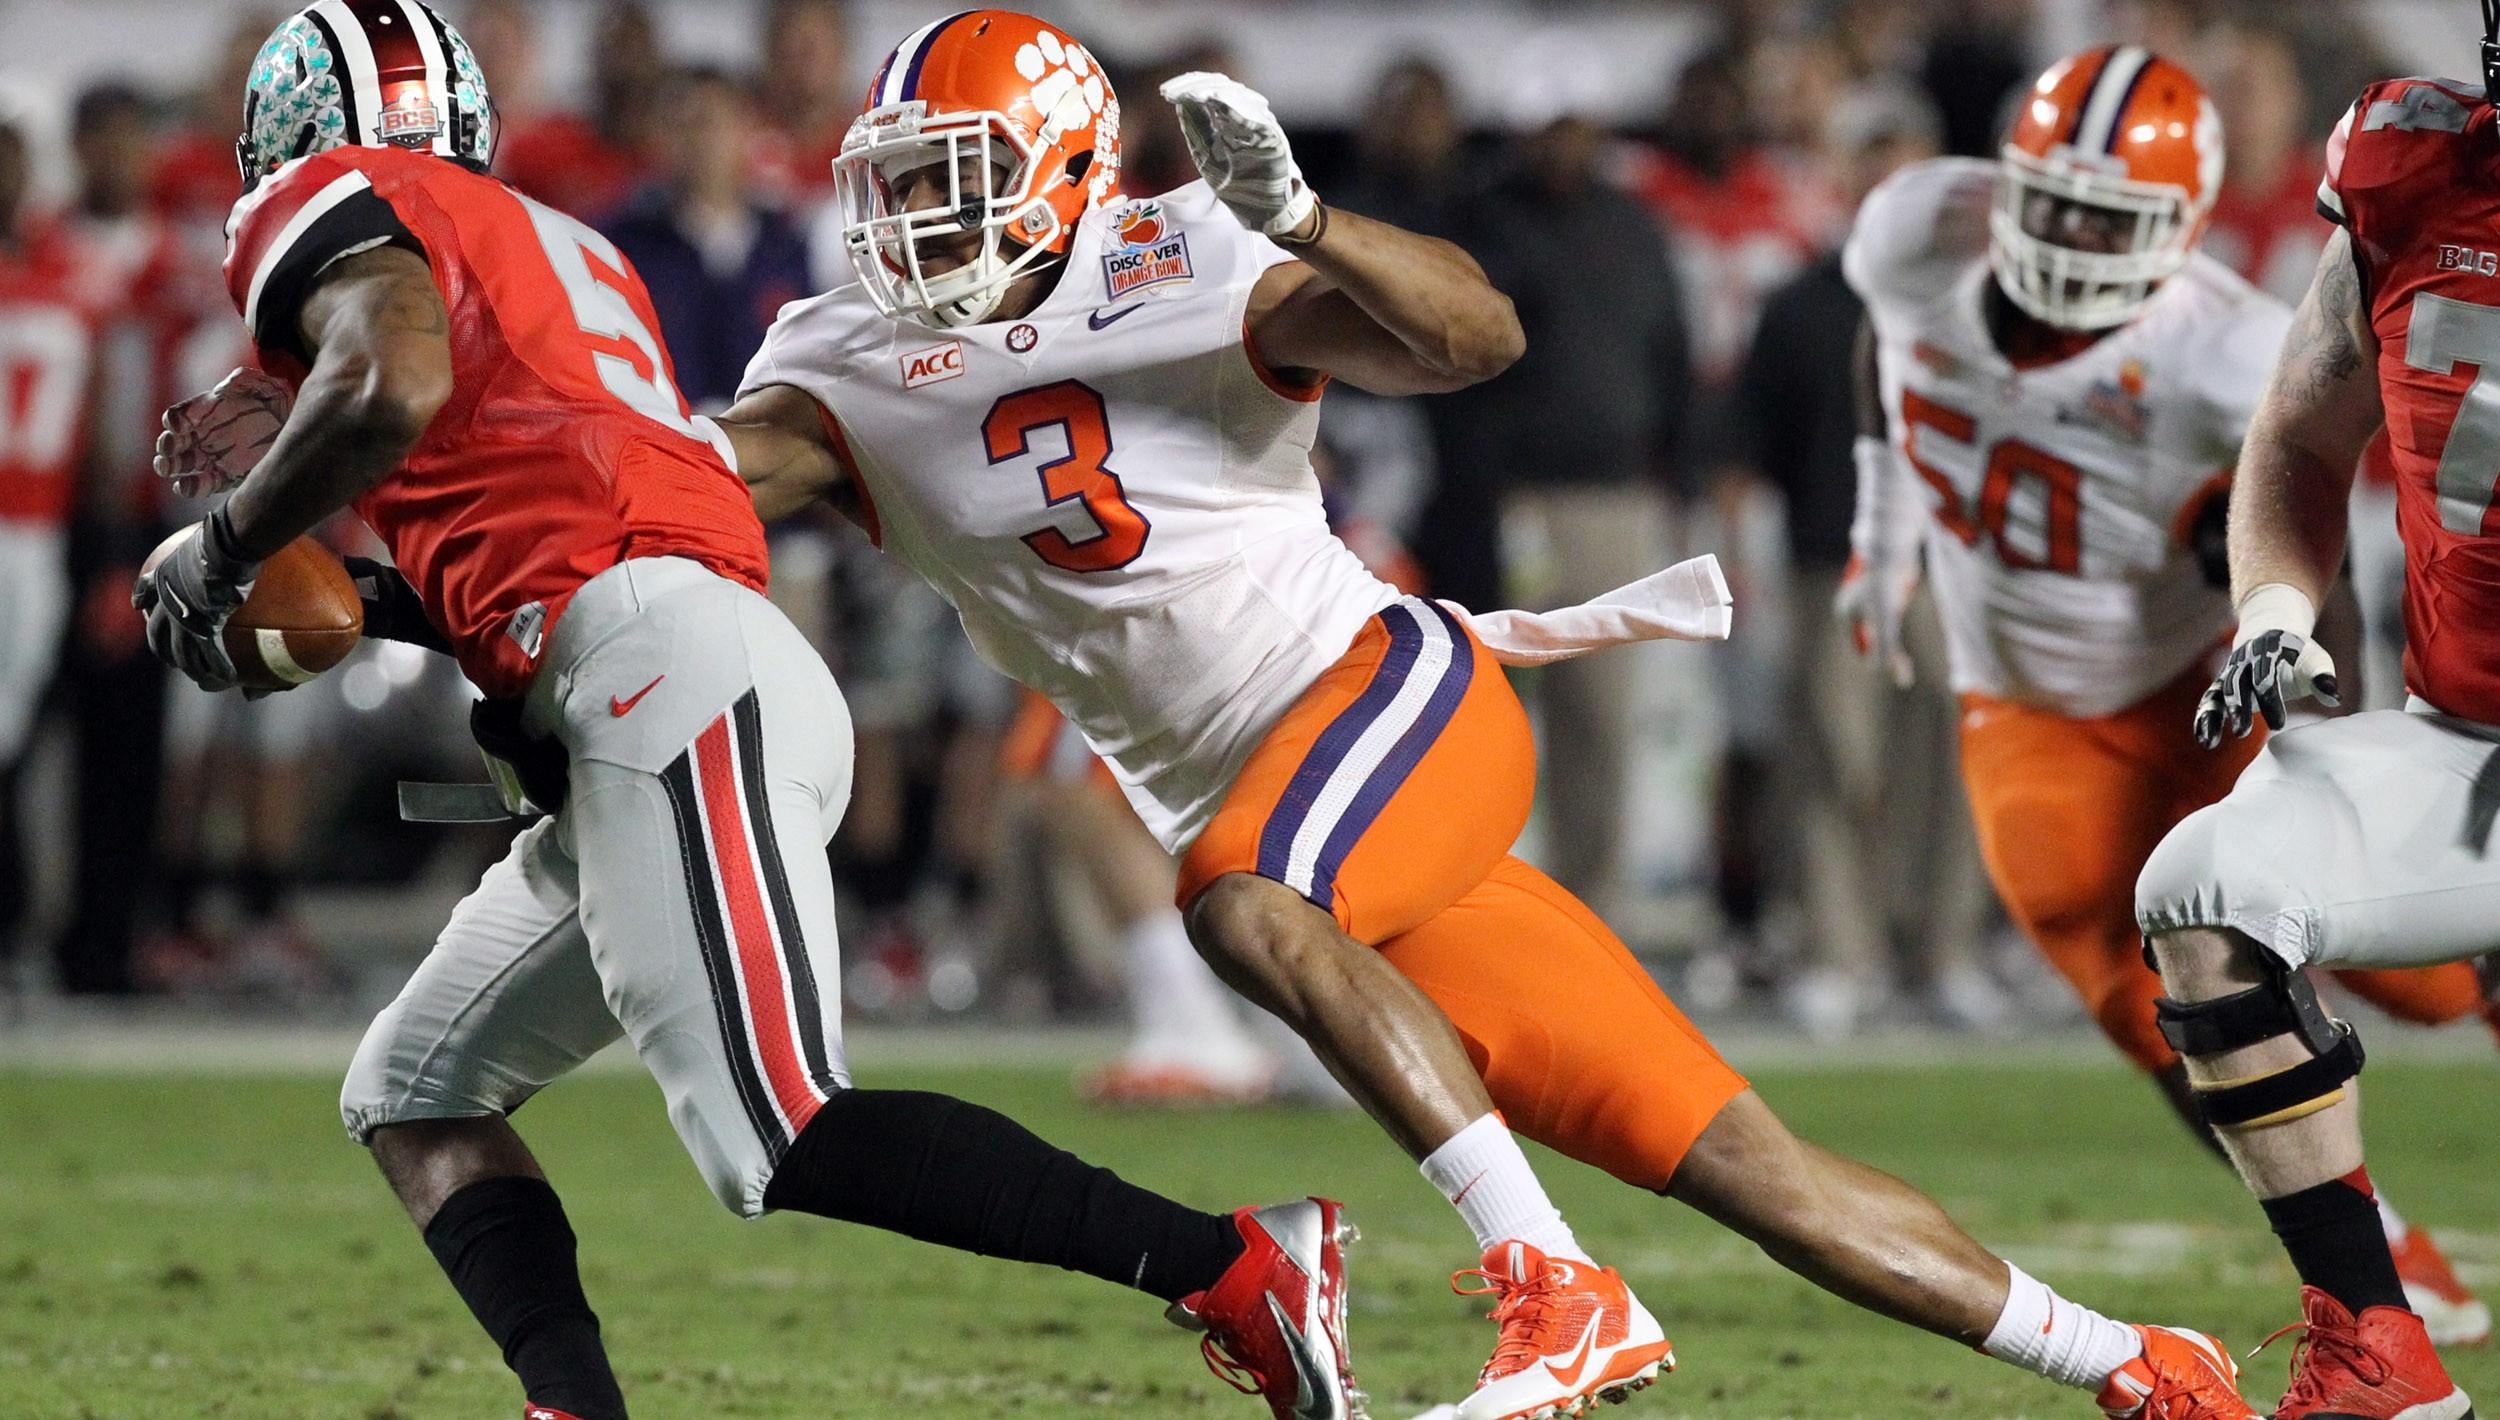 Beasley to Remain at Clemson